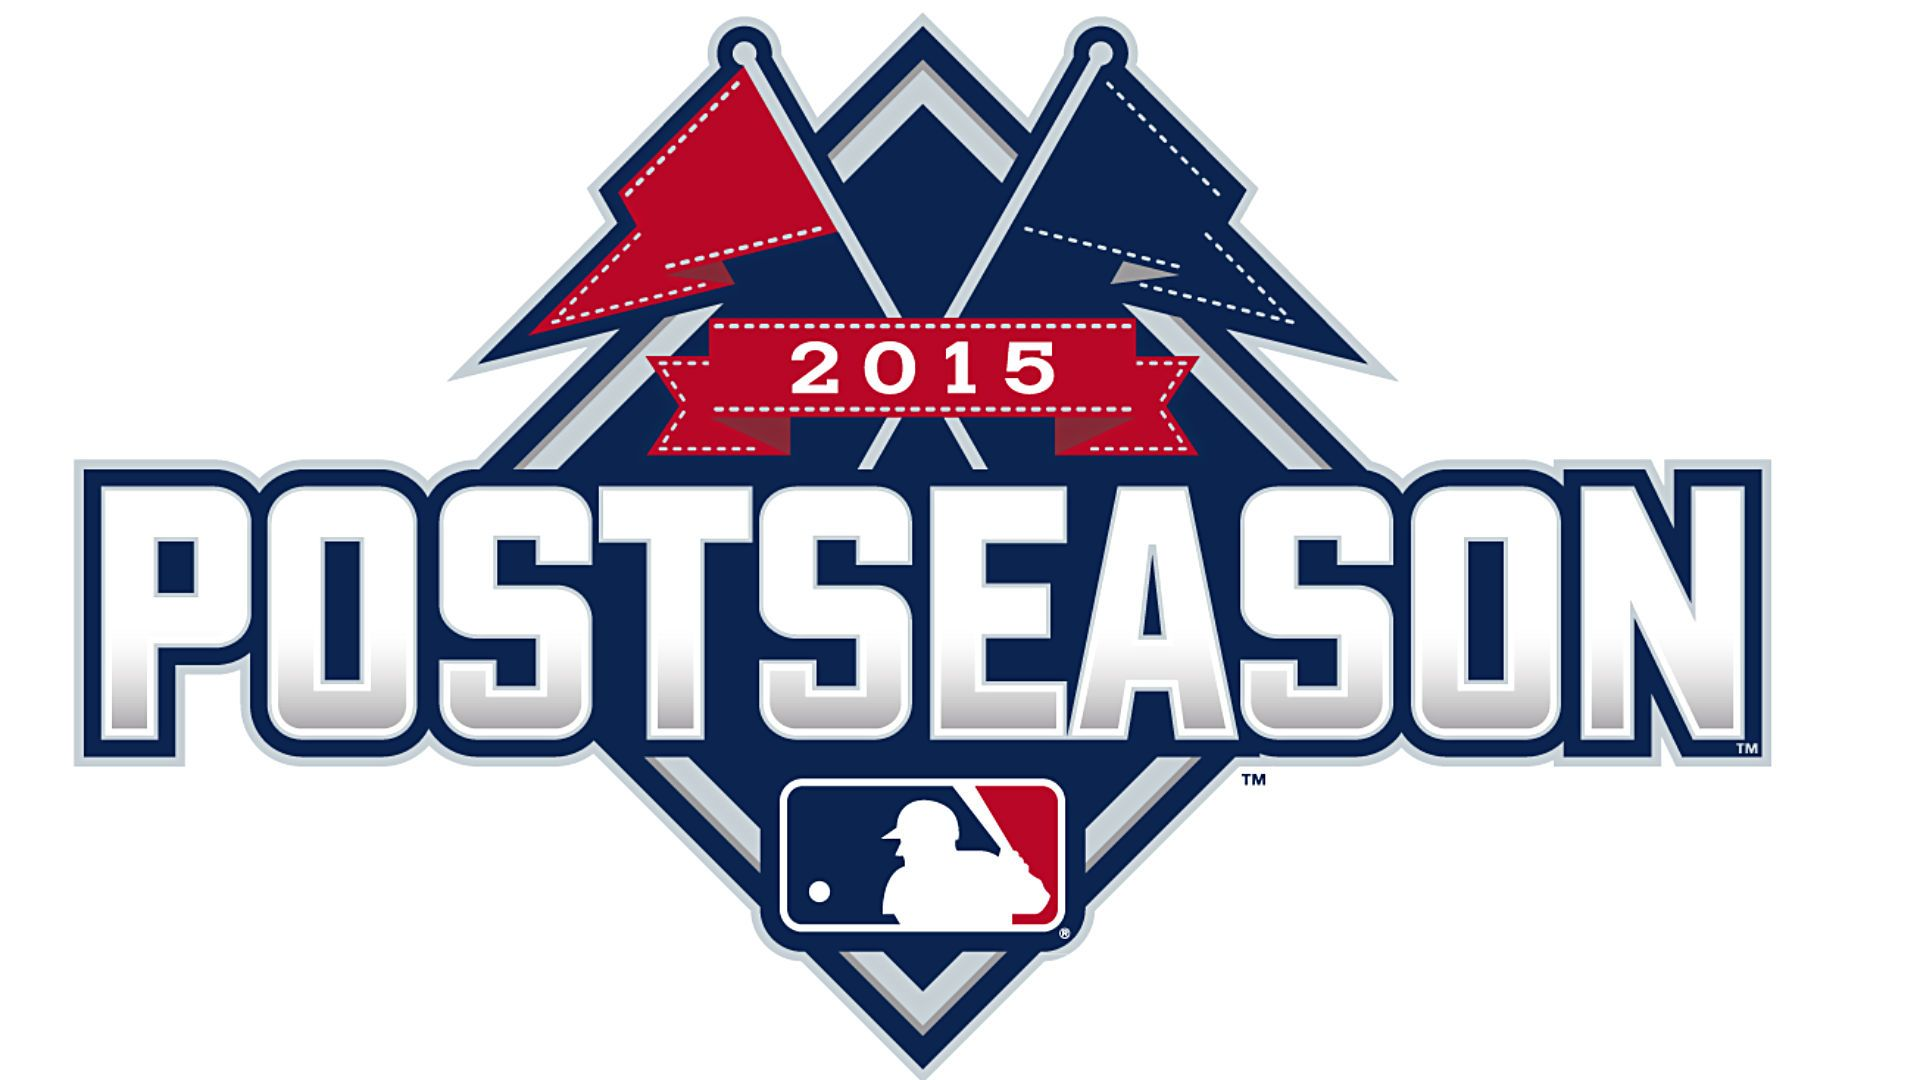 The Mlb Postseason Has Begun Who Do You Think Will Take Home The Championship This Year Mlb Postseason Postseason Mlb World Series